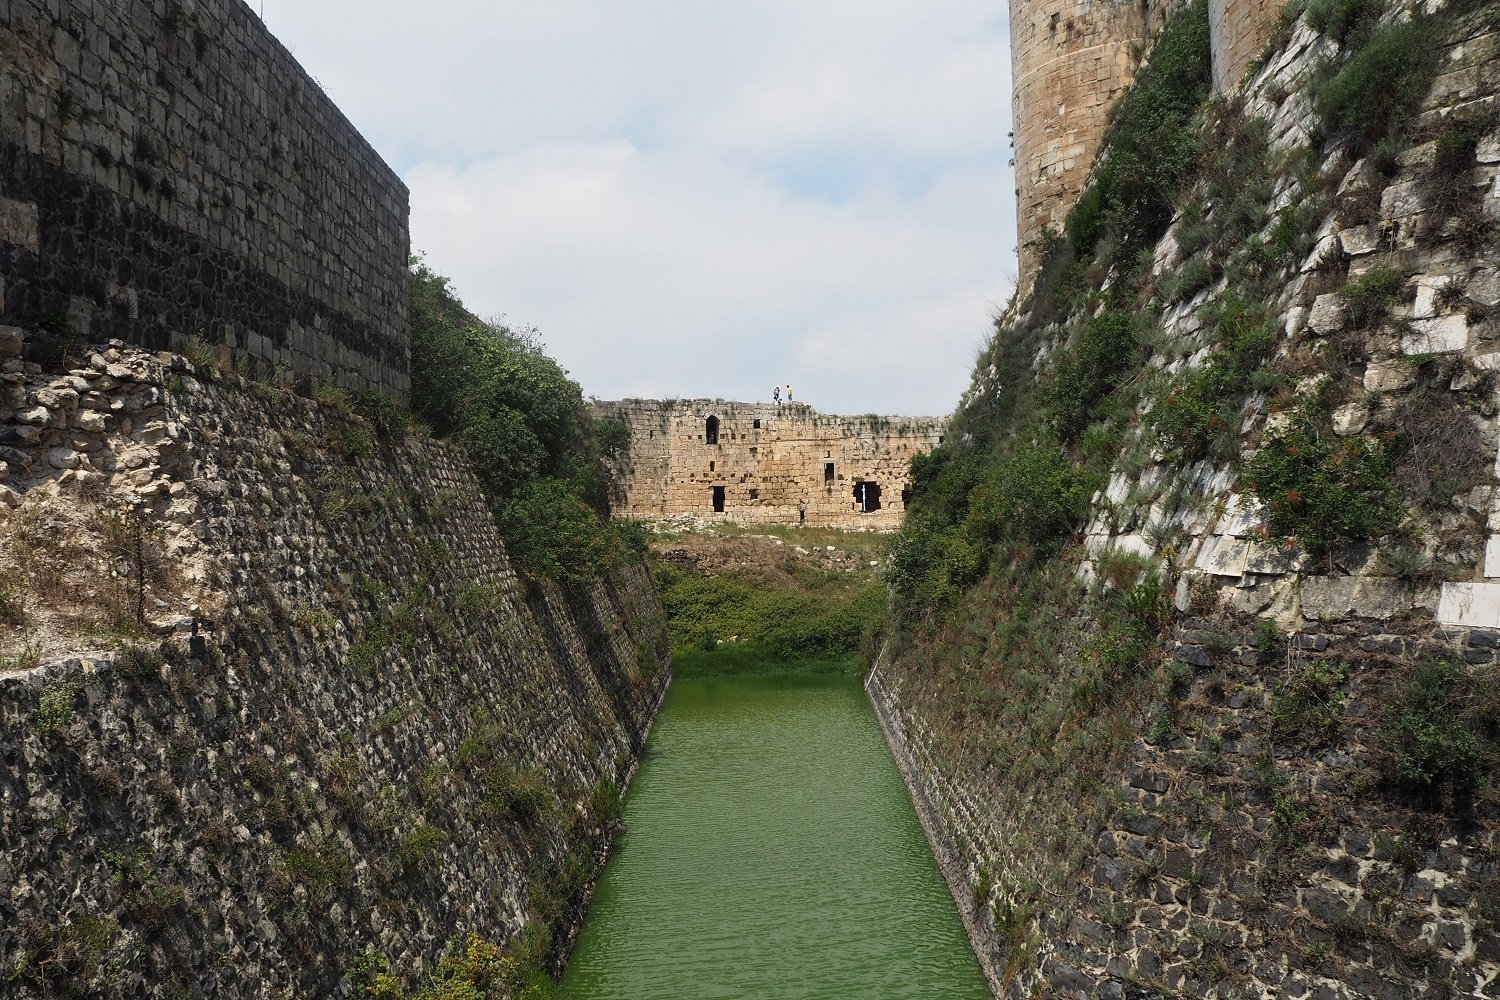 A view of the original medieval moat, which is populated by a community of water snakes (Tom Westcott/MEE)